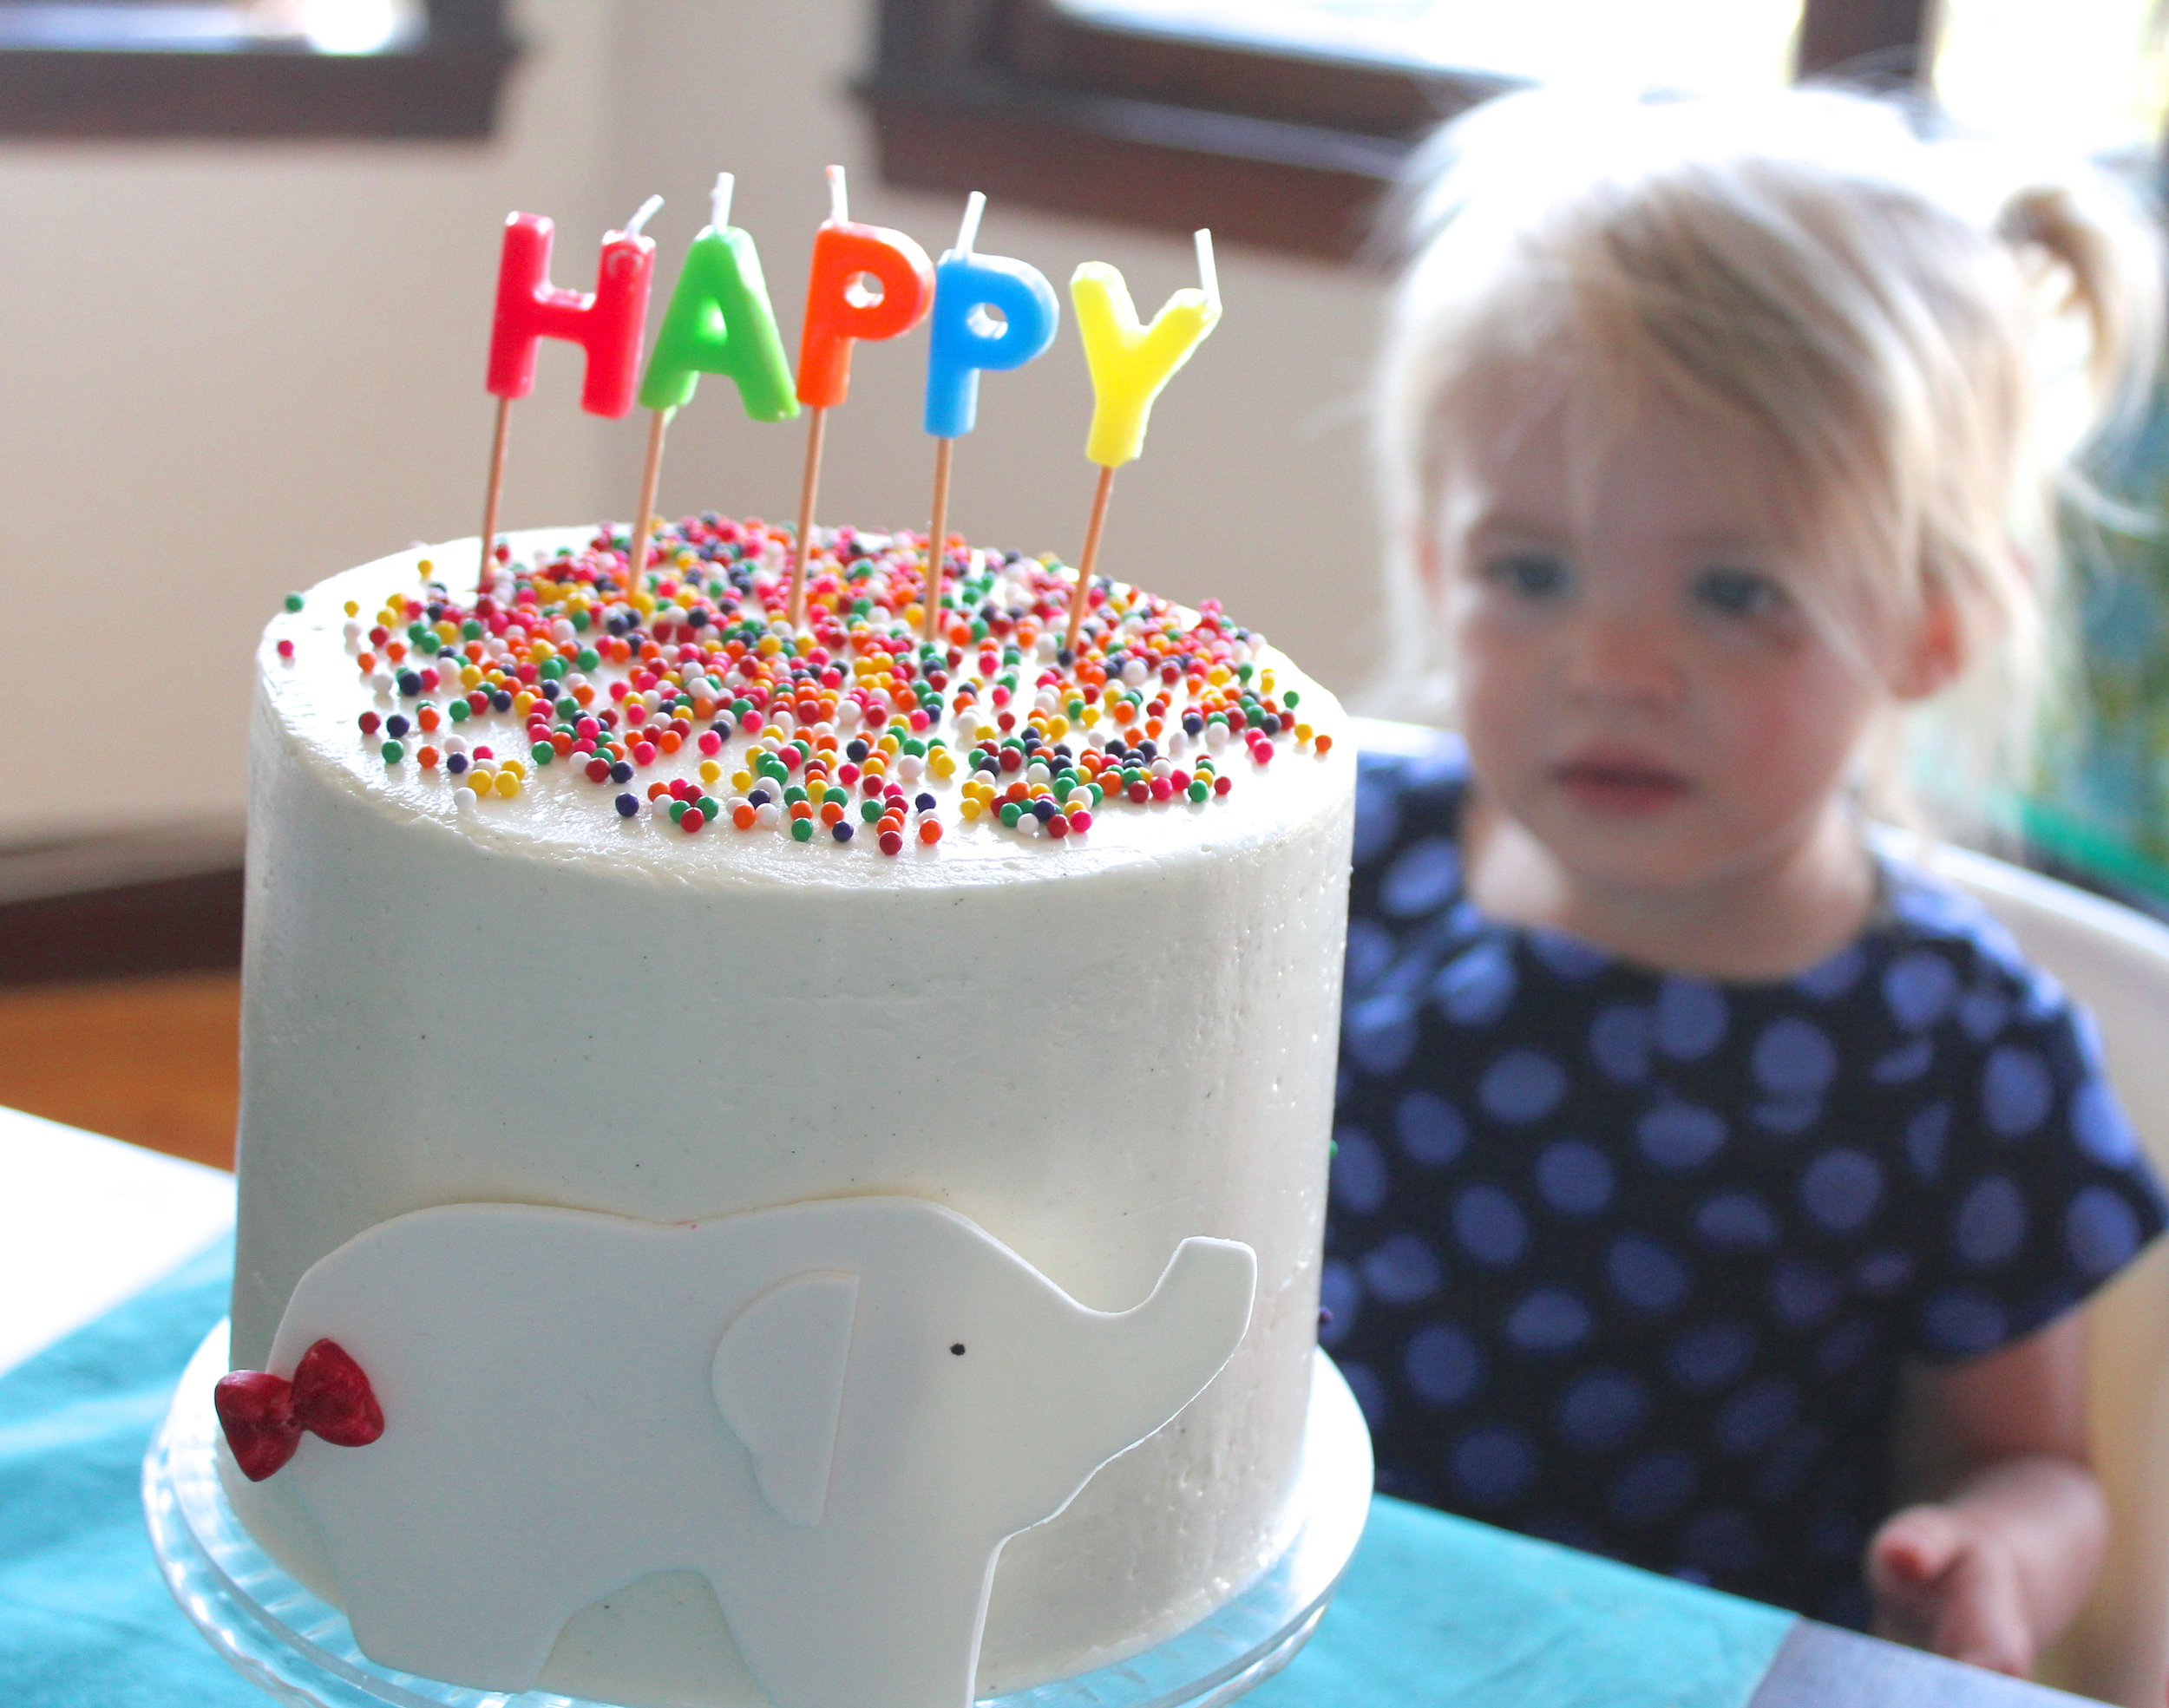 (The Happy Birthday song was a bit unnerving for both of my girls at their 2nd birthday). ;)